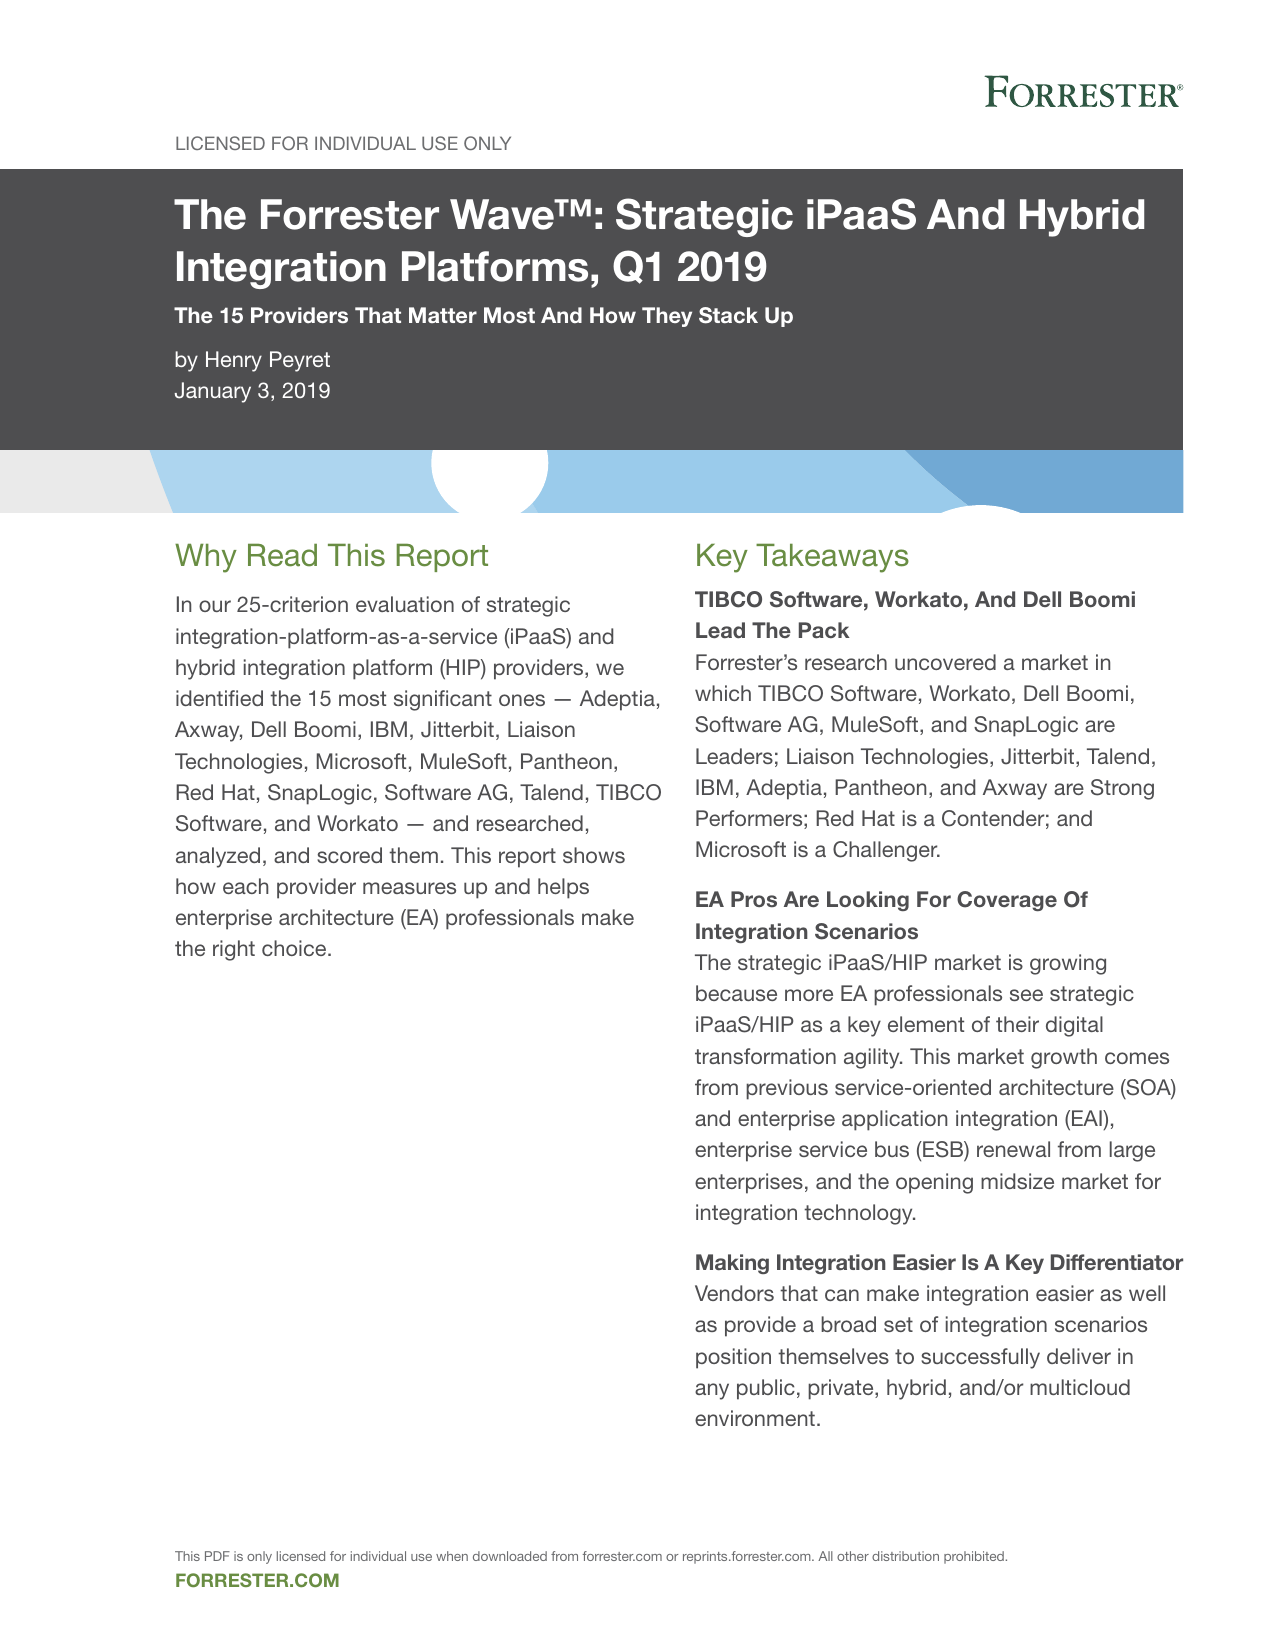 The Forrester Wave™ Strategic iPaaS And Hybrid Integration Platforms